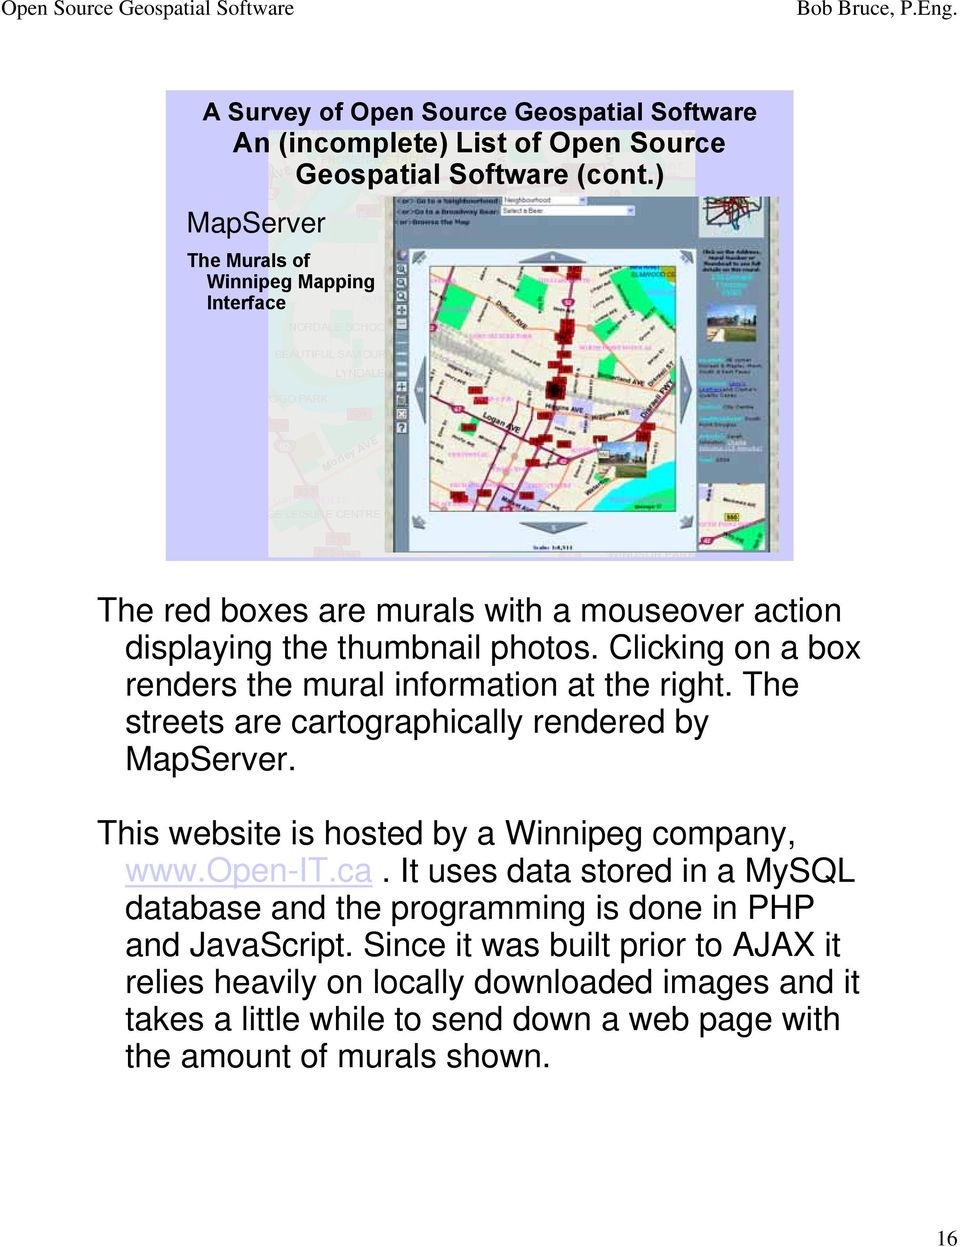 Clicking on a box renders the mural information at the right. The streets are cartographically rendered by MapServer.